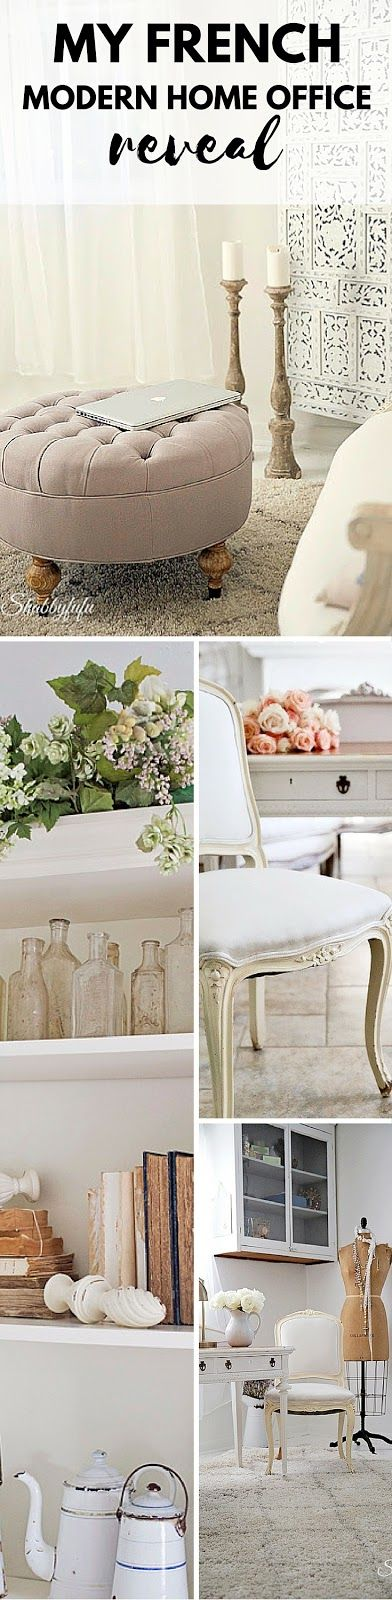 Modern feminine french style office in white reveal.  Come see my beautiful French Modern Home Office Reveal on ShabbyFufu Blog.